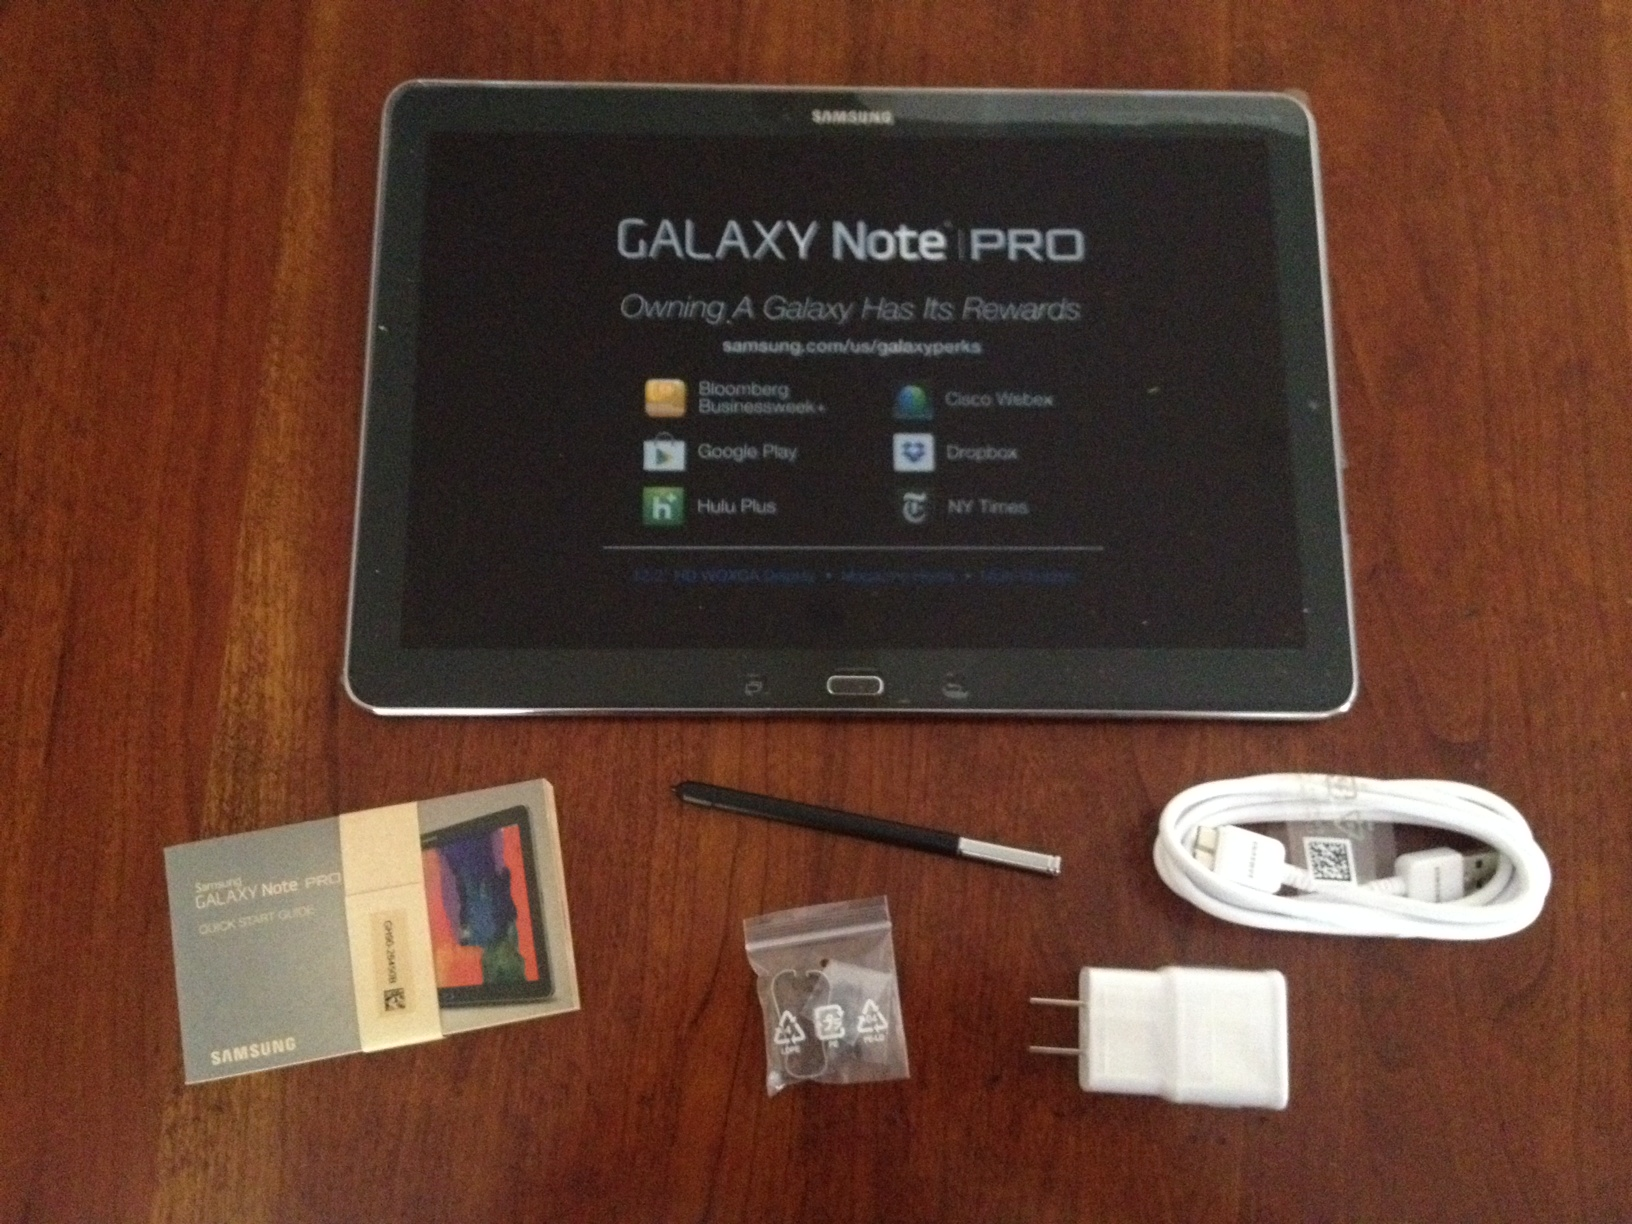 The Samsung Galaxy Note Pro 12.2 and its tiny S-Pen. It includes an extractor and five replacement nibs.